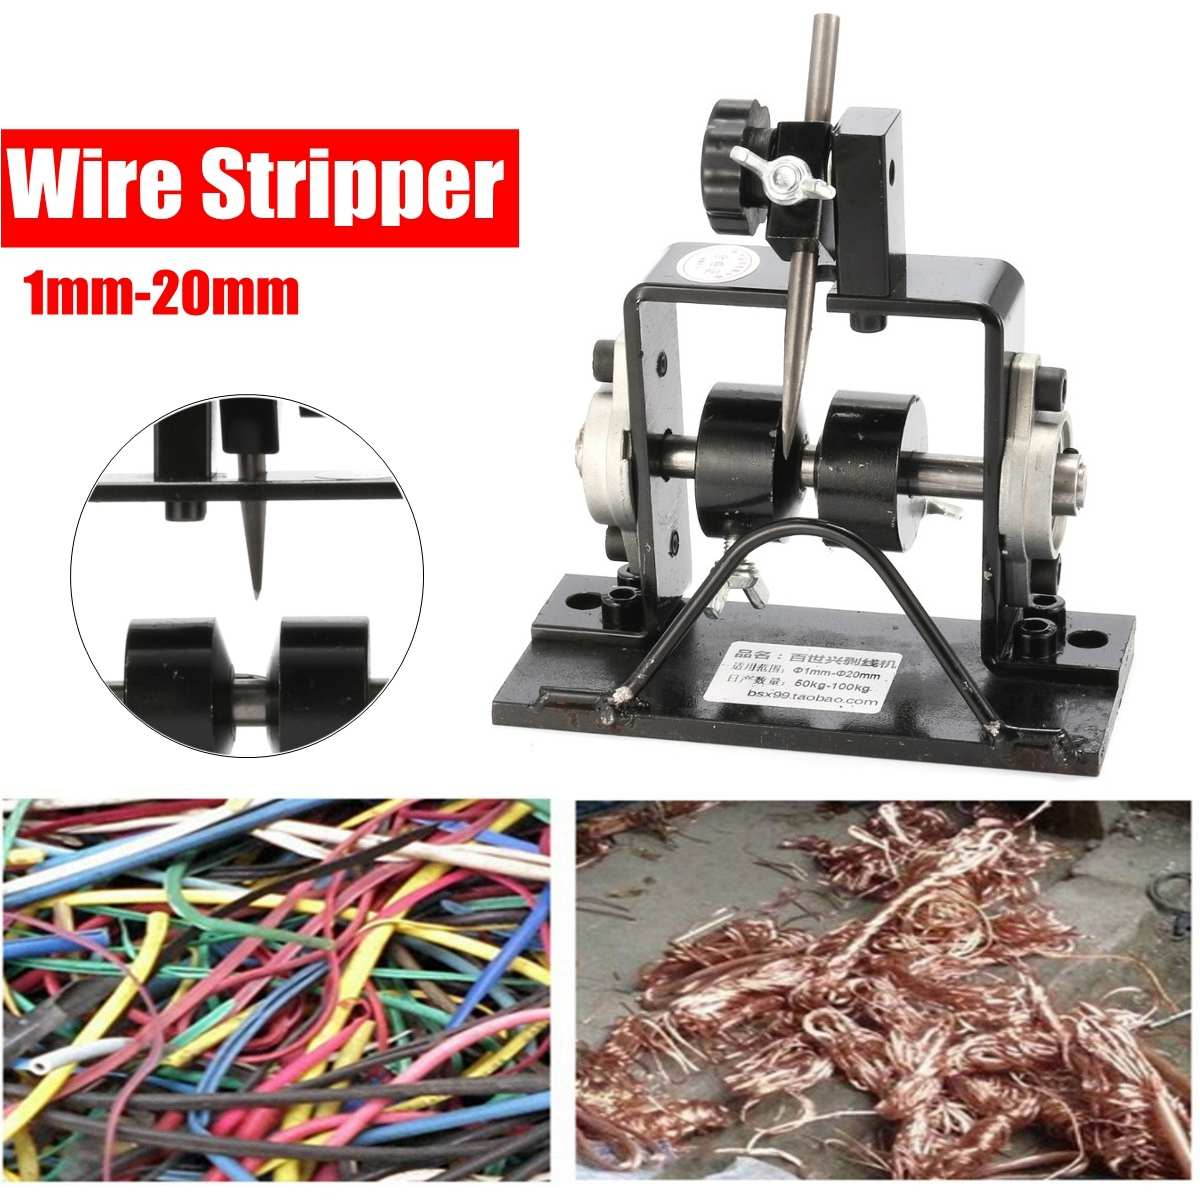 Useful Manual Wire Cable Stripping Peeling Machine For Metal Wire Recycle Wire Cable Stripper Stripping Metal Recycle ToolUseful Manual Wire Cable Stripping Peeling Machine For Metal Wire Recycle Wire Cable Stripper Stripping Metal Recycle Tool